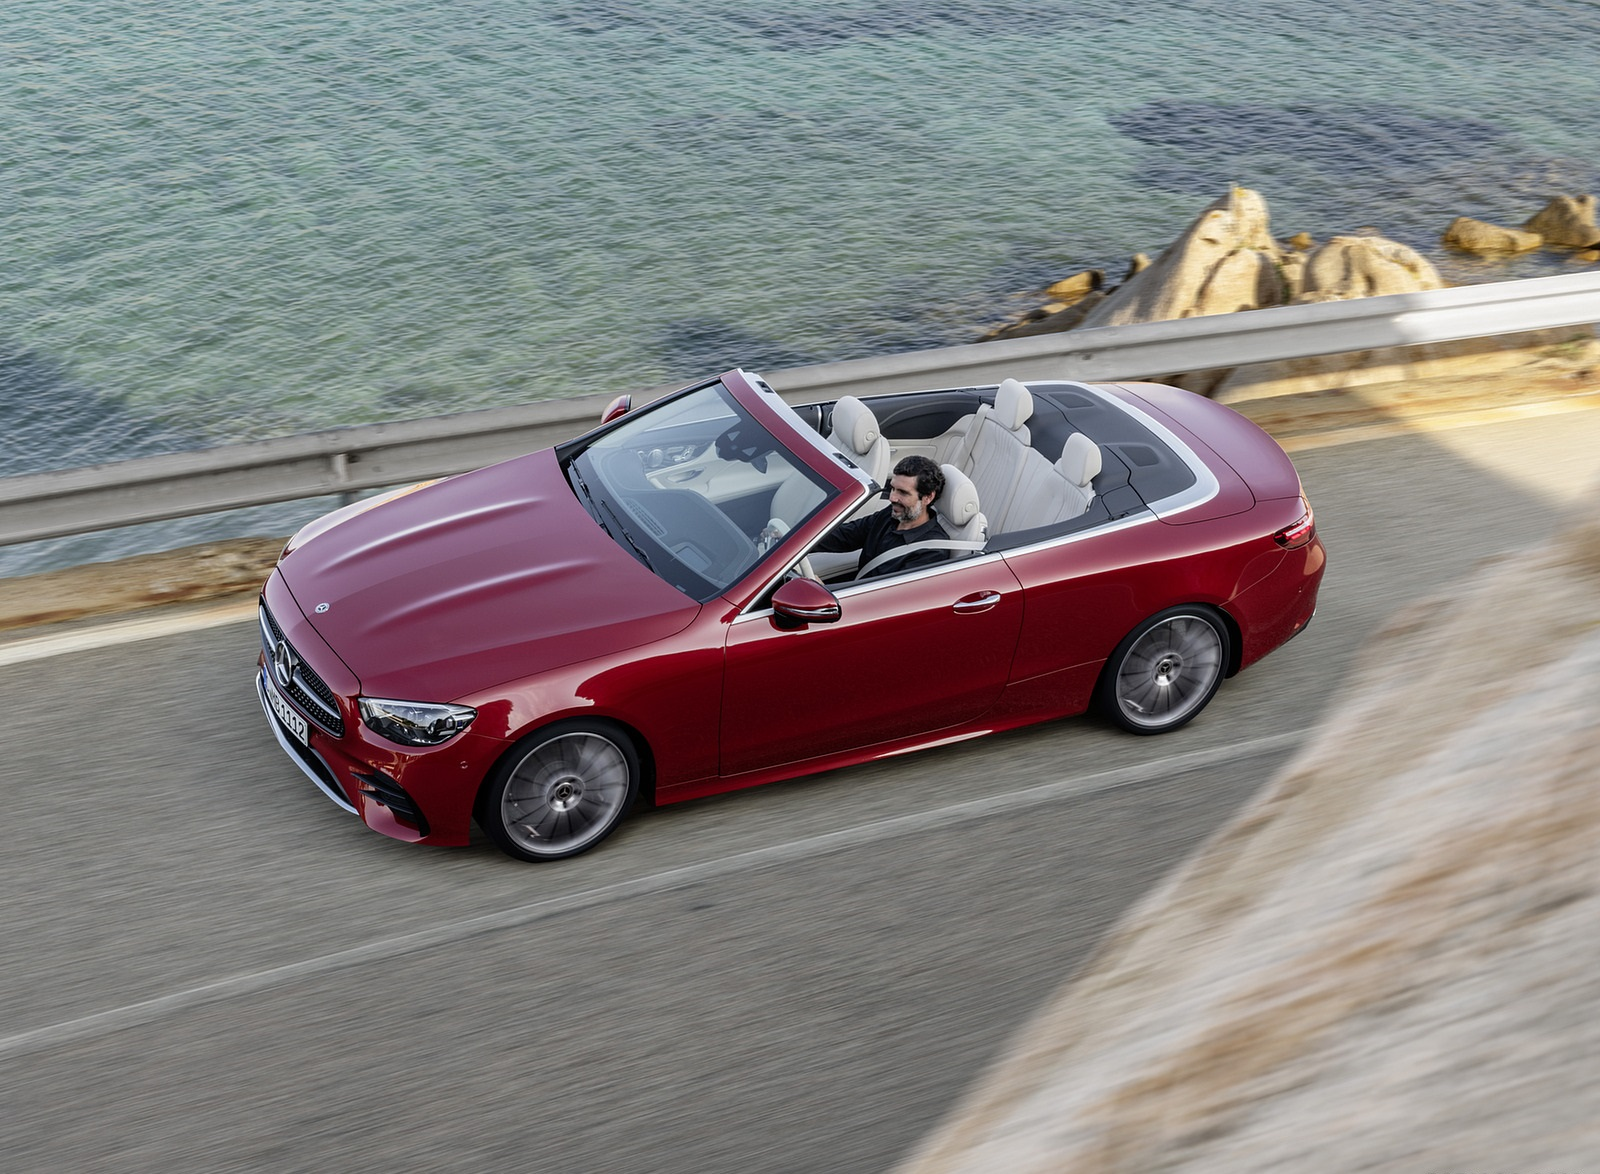 2021 Mercedes-Benz E 450 4MATIC Cabriolet AMG Line (Color: Designo Hyacinth Red Metallic) Front Three-Quarter Wallpapers (5)